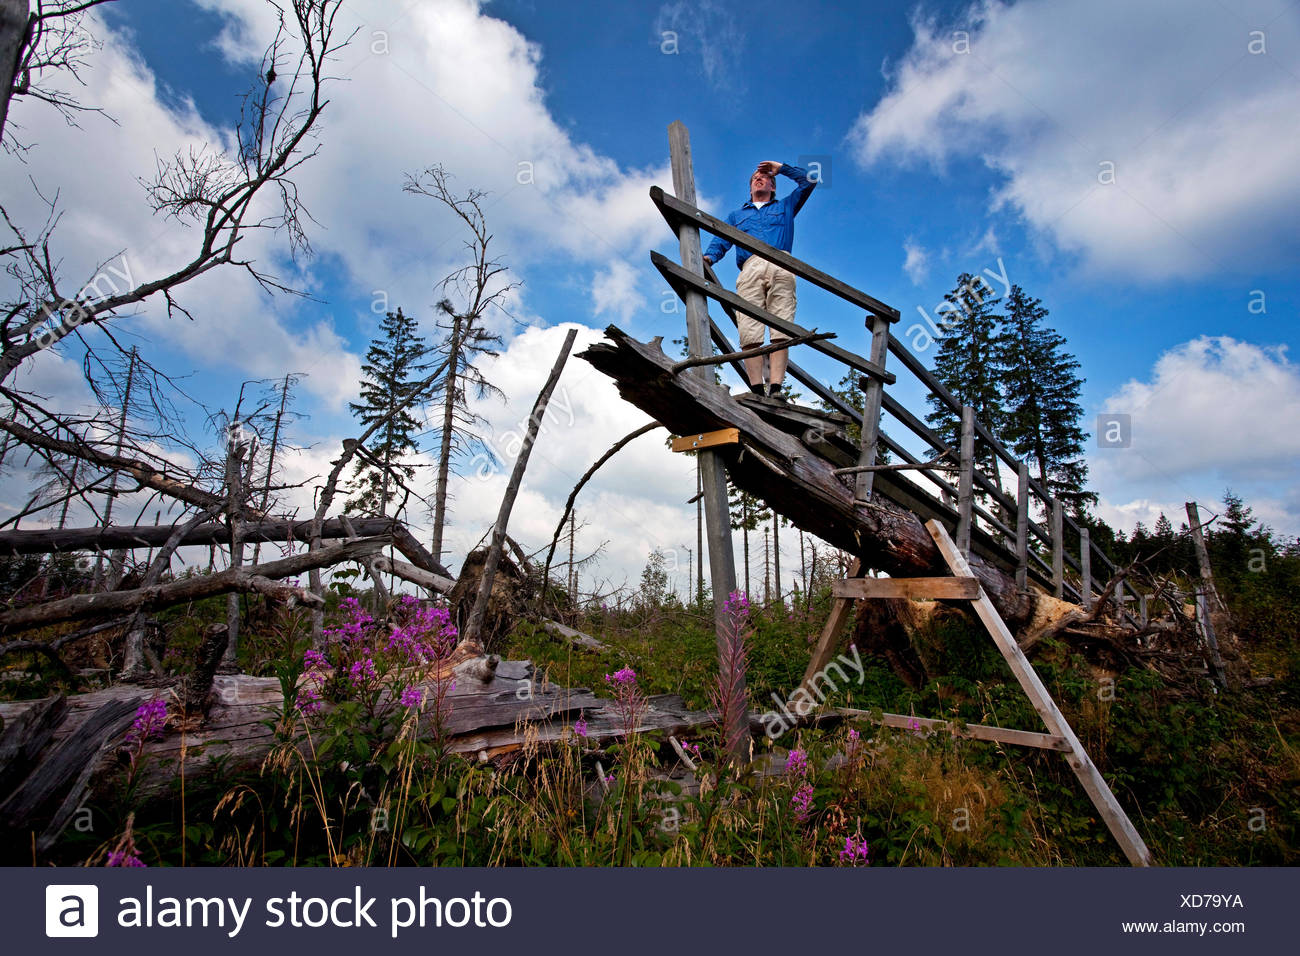 man on Kyrill path looking at storm losses, Germany, North Rhine-Westphalia, Sauerland, Schmallenberg - Stock Image